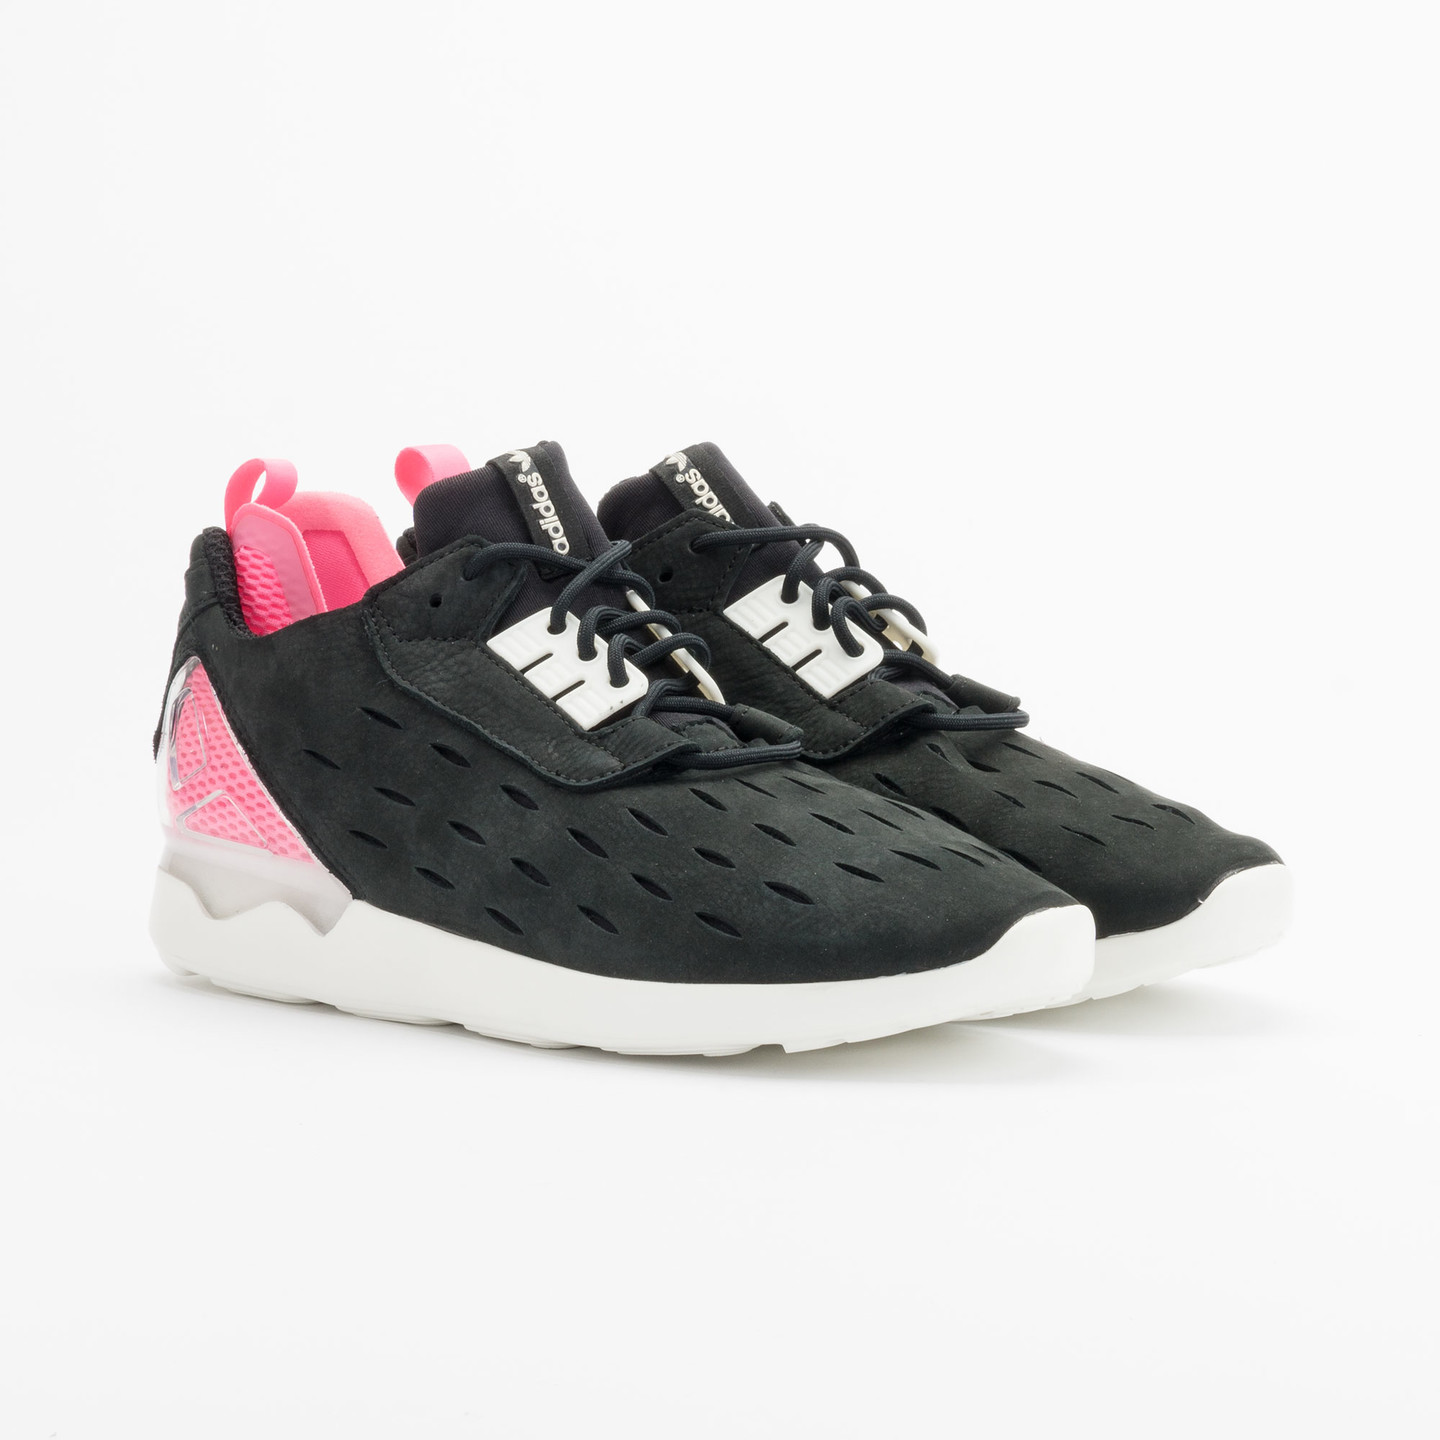 Adidas ZX 8000 Blue Boost Black/Hot-Pink/White B25872-46.66